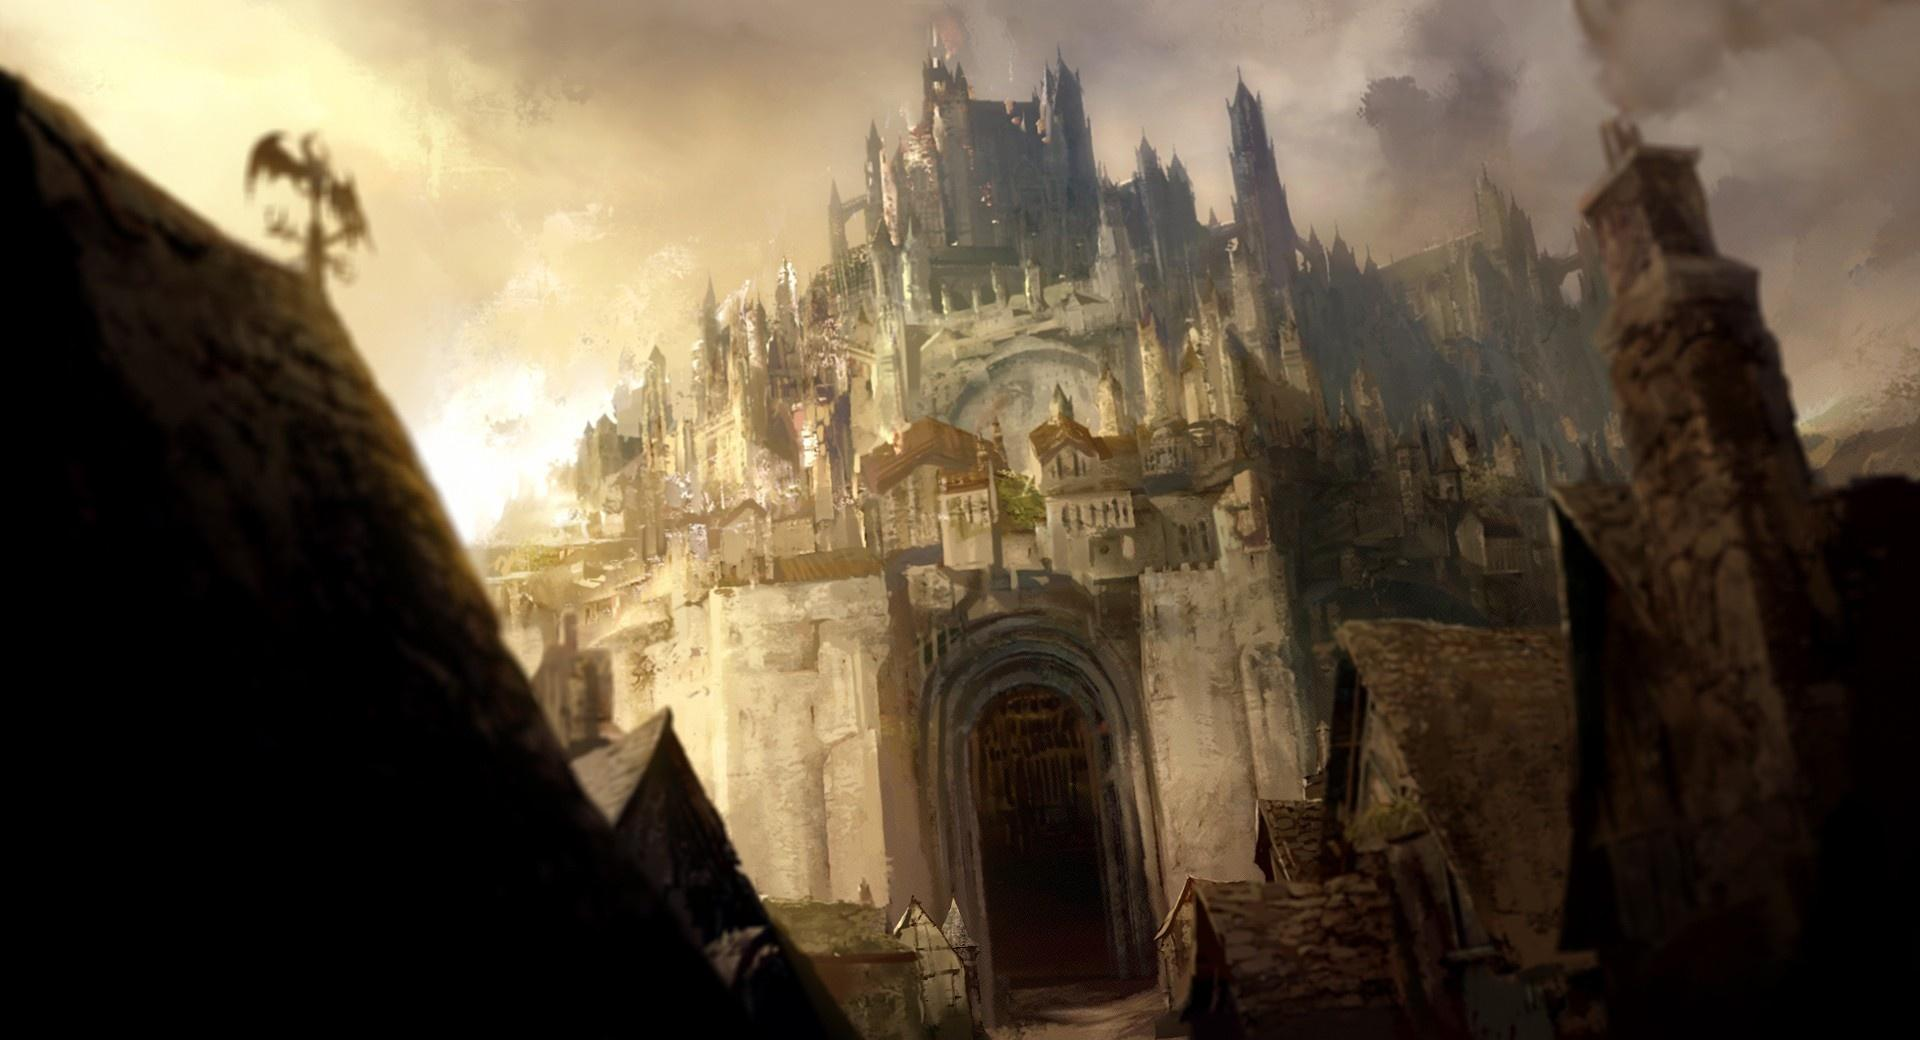 Castle Painting wallpapers HD quality